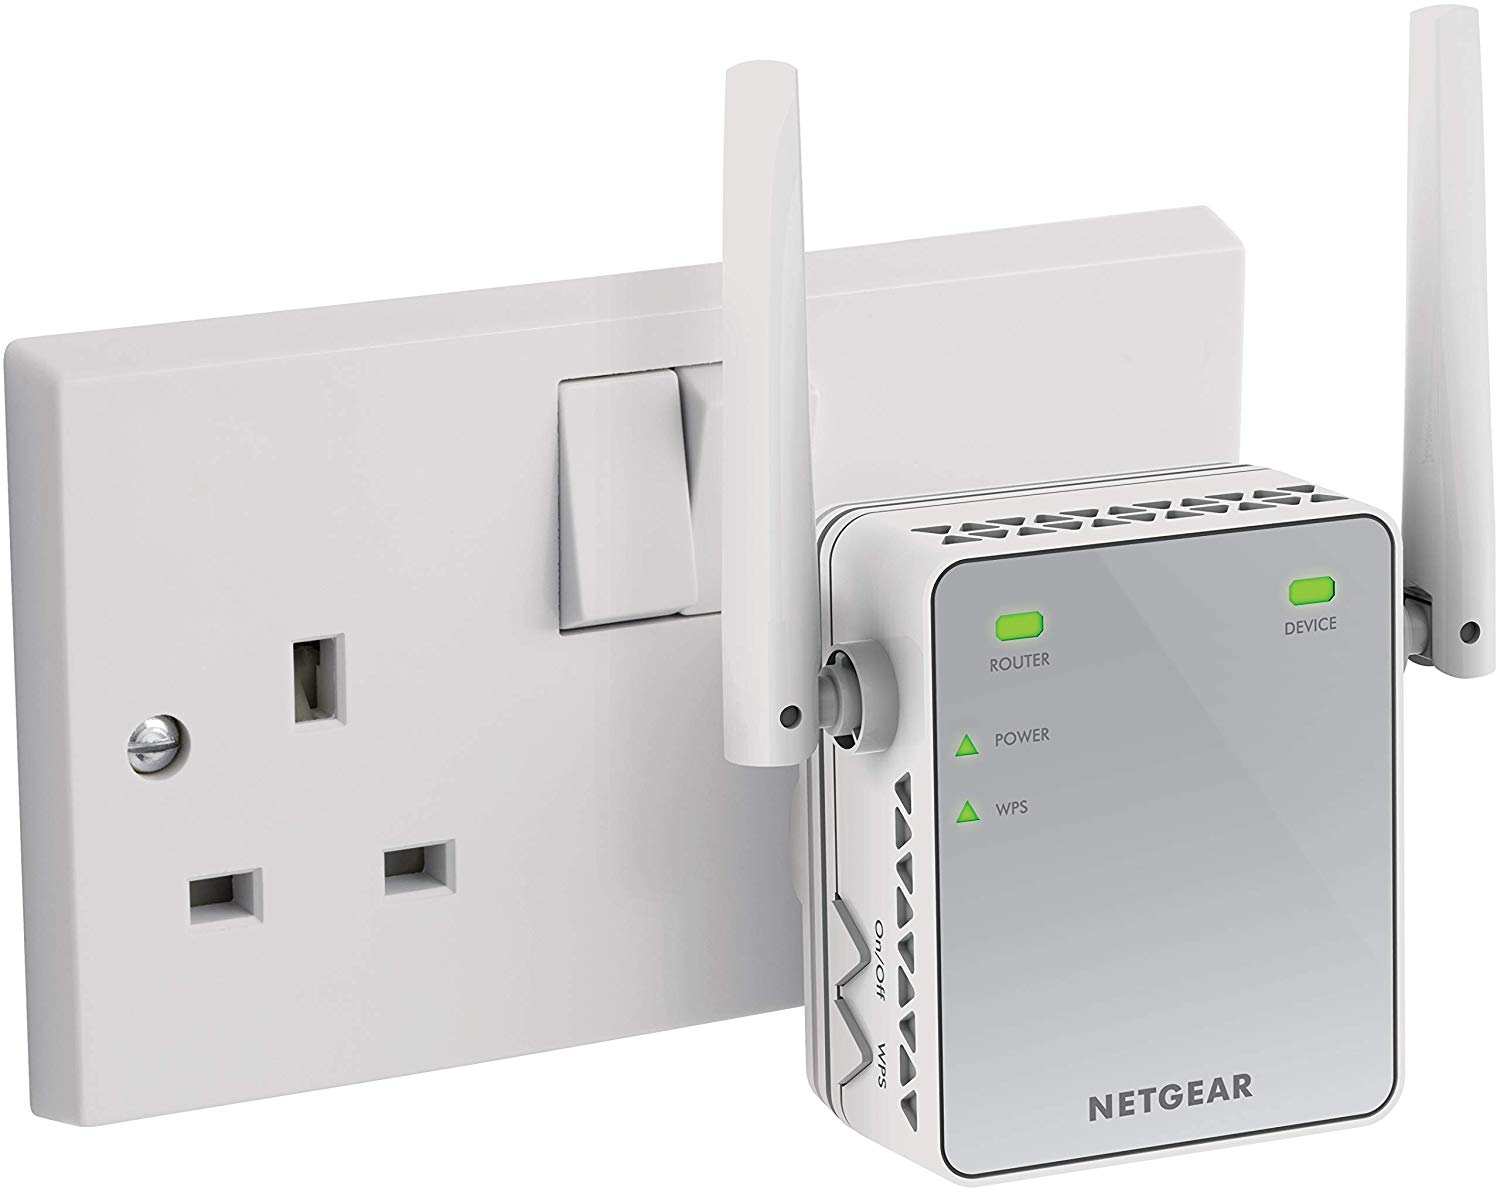 NETGEAR Wi-Fi Range Extender EX2700 – Coverage up to 600 sq.ft.